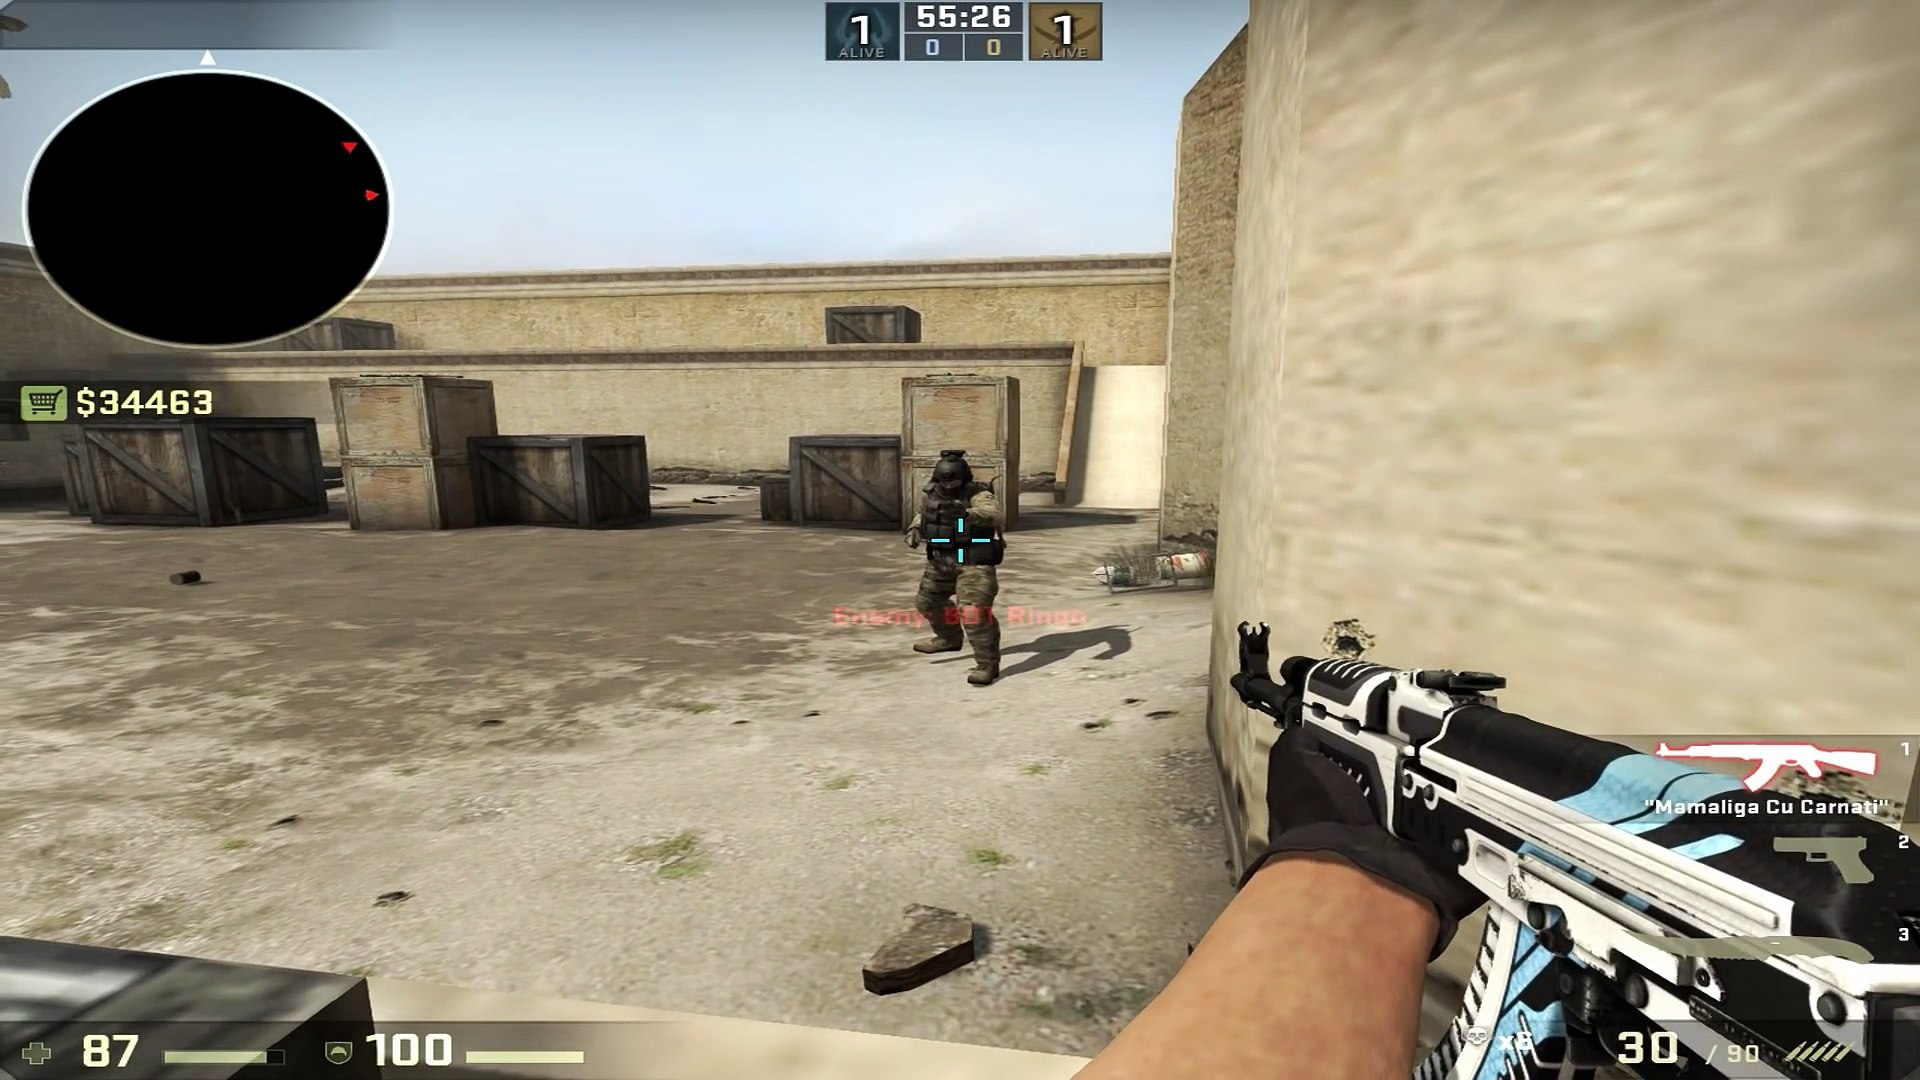 CSGO 4 3 Resolution Explained (1280x960 Stretched)